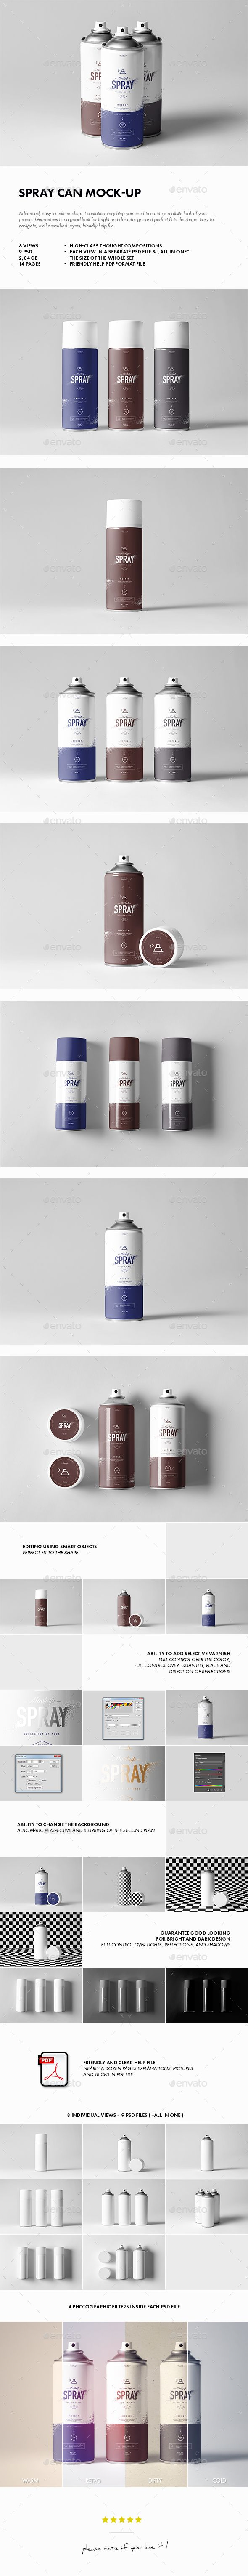 Spray Can Mock-up. Download here: https://graphicriver.net/item/spray-can-mockup/17626758?ref=ksioks